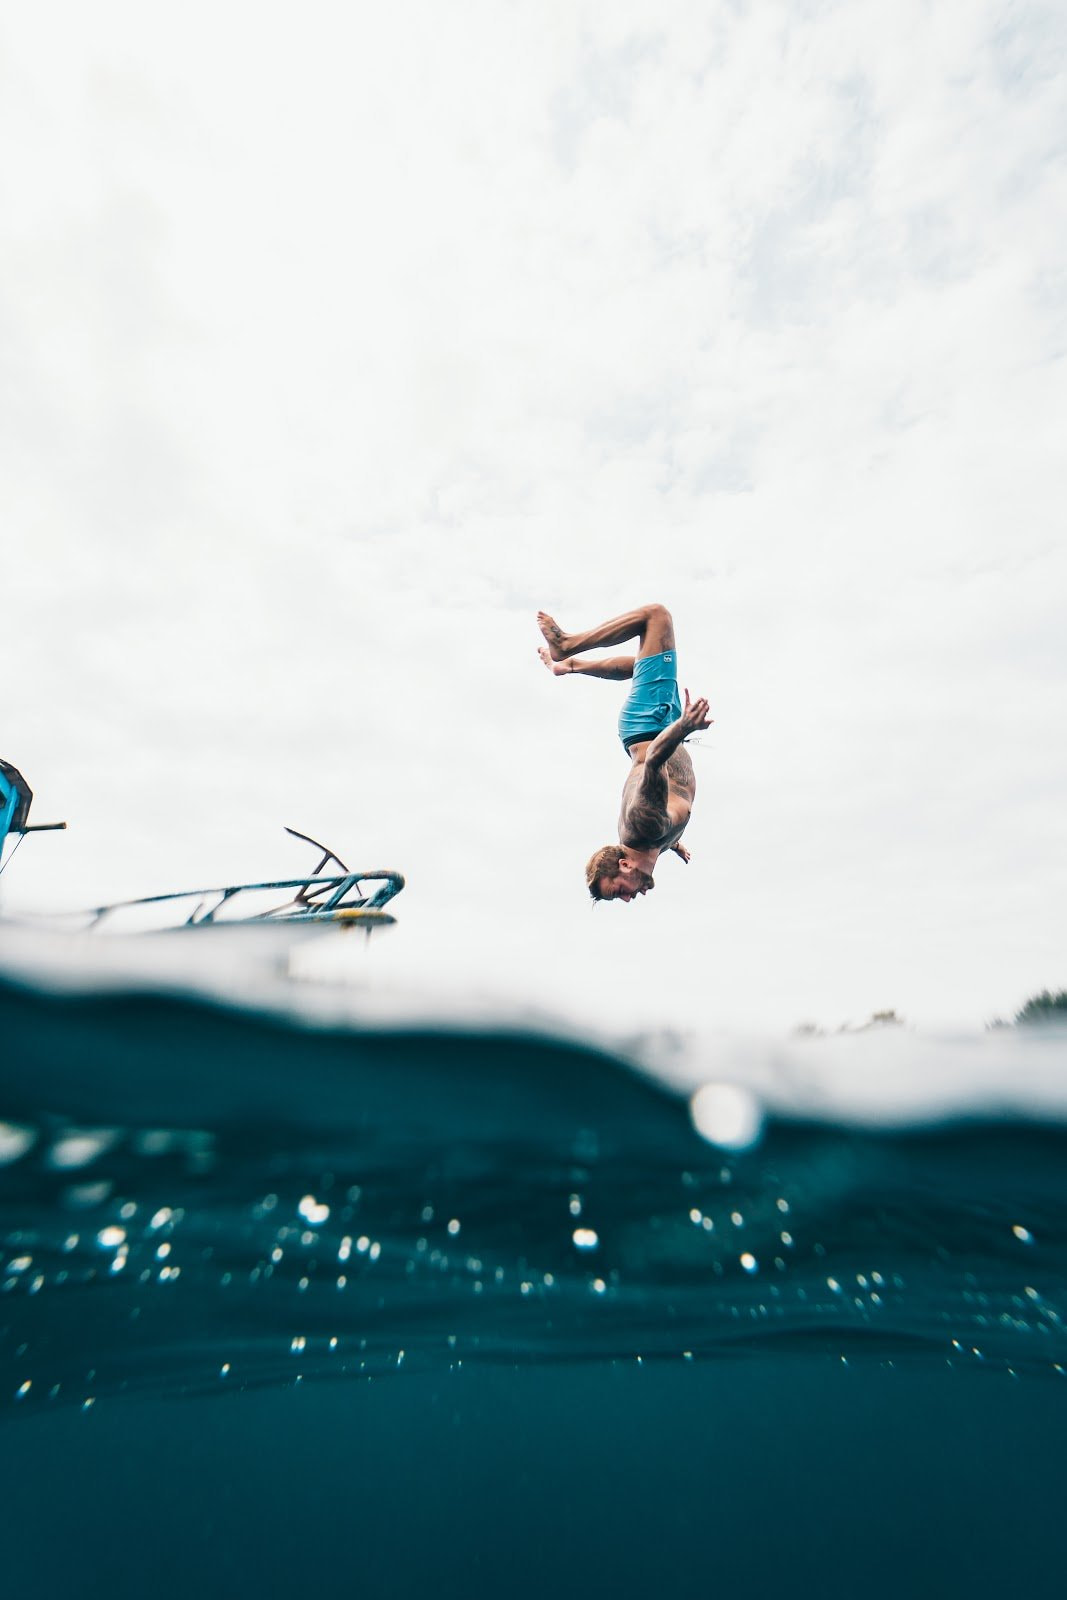 Person doing a backflip from a boat into the ocean motion photography by Oliver Sjöström